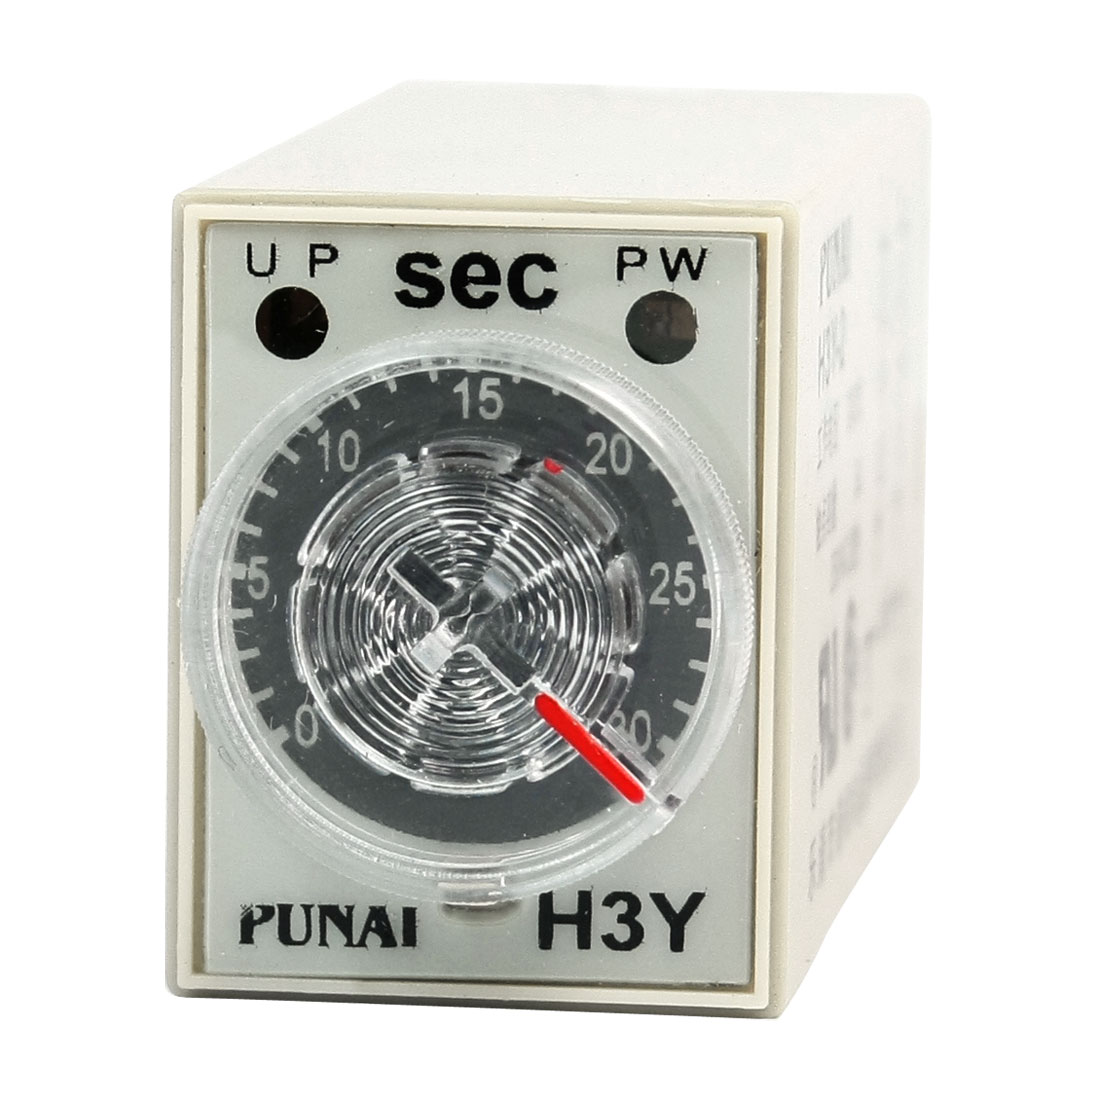 24VDC DPDT Knob Control 30 Second Time Delay Relay H3Y-2 8Pin